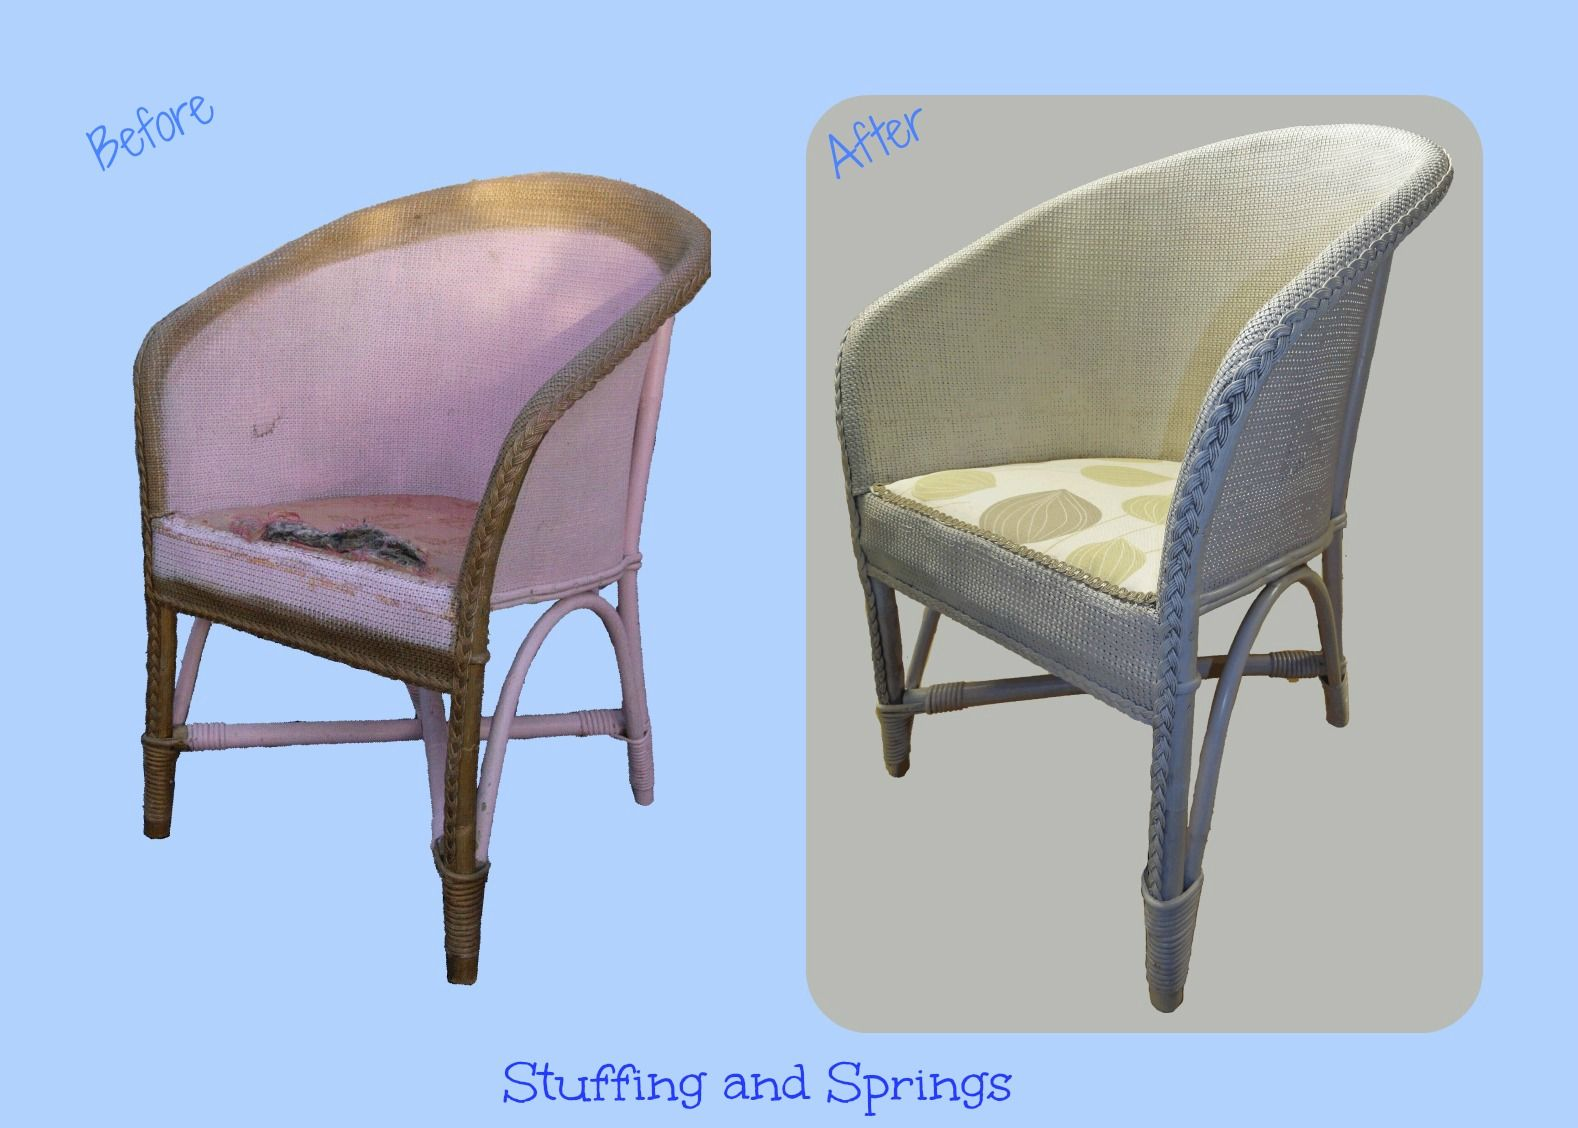 Lovely Lloyd Loom Style Chair Repainted, Reupholstered U0026 Recovered. Re Upholstered  Furniture By Stuffing